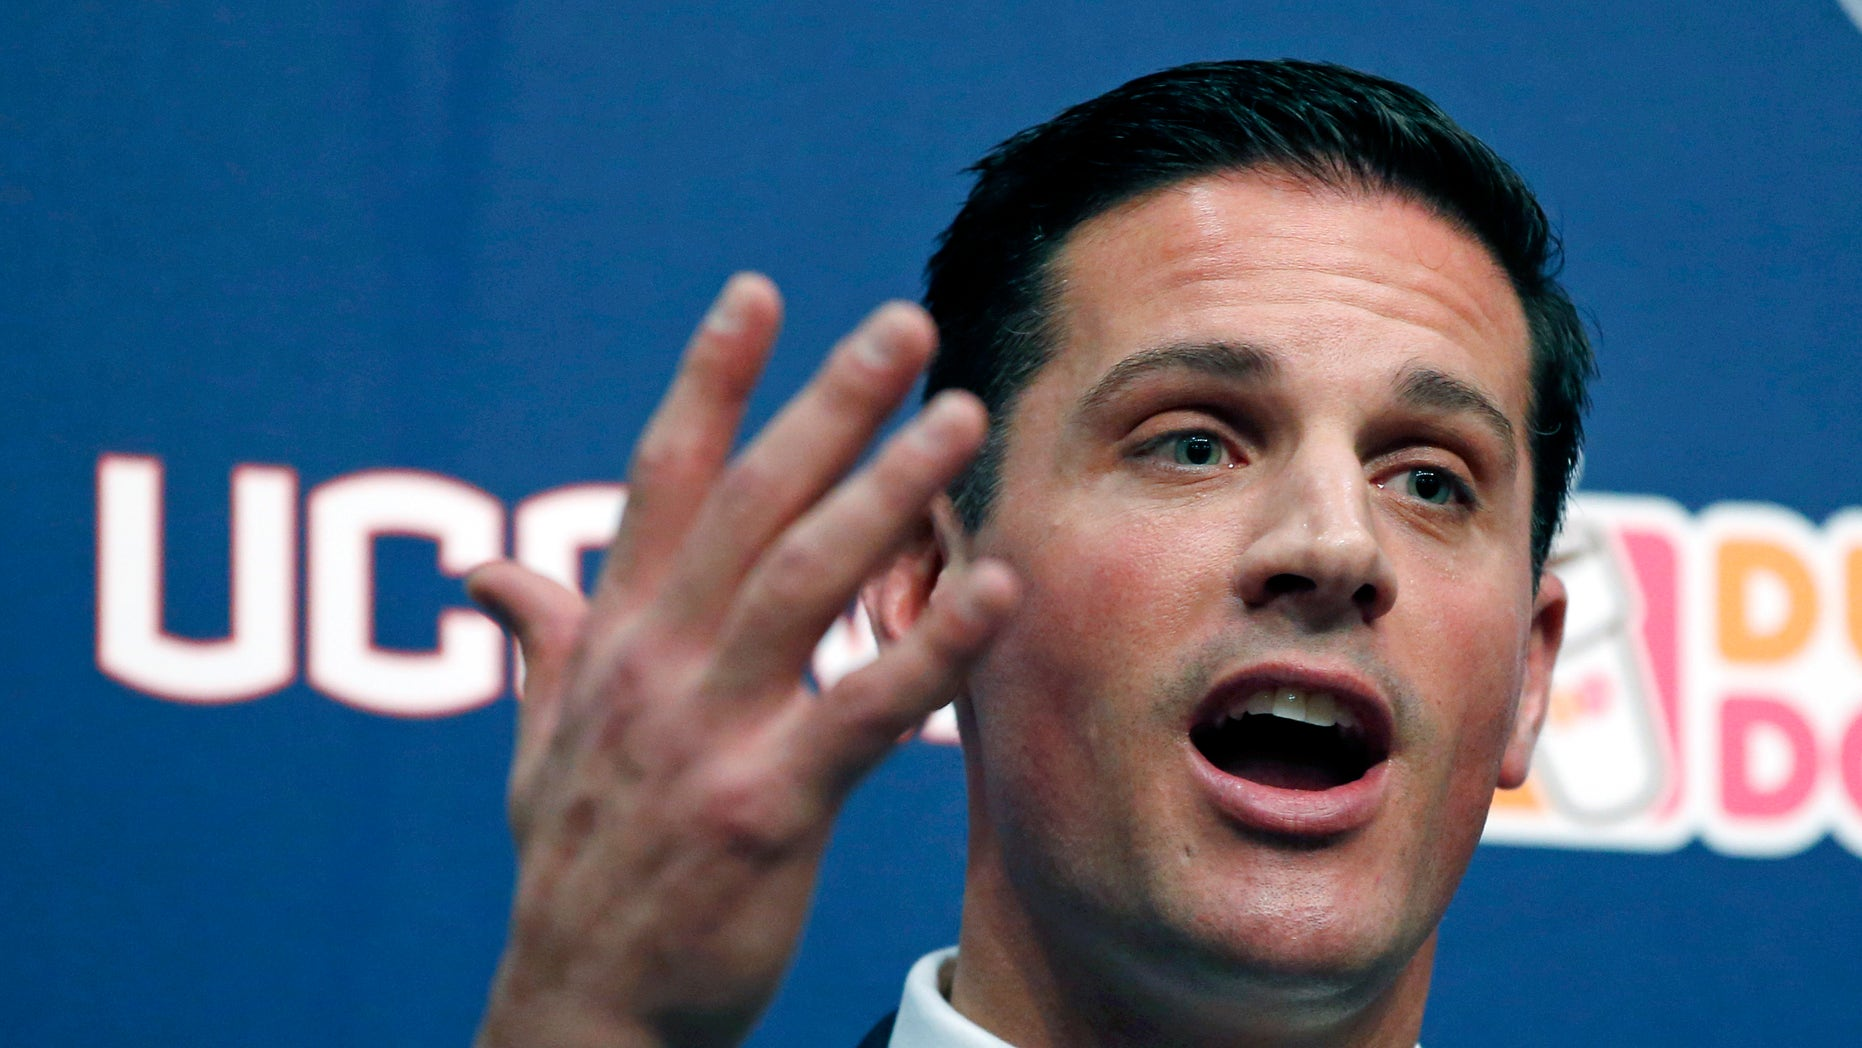 In this Dec. 12, 2013 file photo, Bob Diaco, former Notre Dame defensive coordinator, speaks after being introduced as Connecticut's new head football coach on campus in Storrs, Conn. Diaco acknowledges he's detail oriented. Two months into the job, there have been some changes at UConn's Shenkman football training center, all ordered by Diaco, who spent some time with a pad and pen diagramming every room in the building. UConn's spring practice begins on March 10. (AP Photo/Elise Amendola, File)